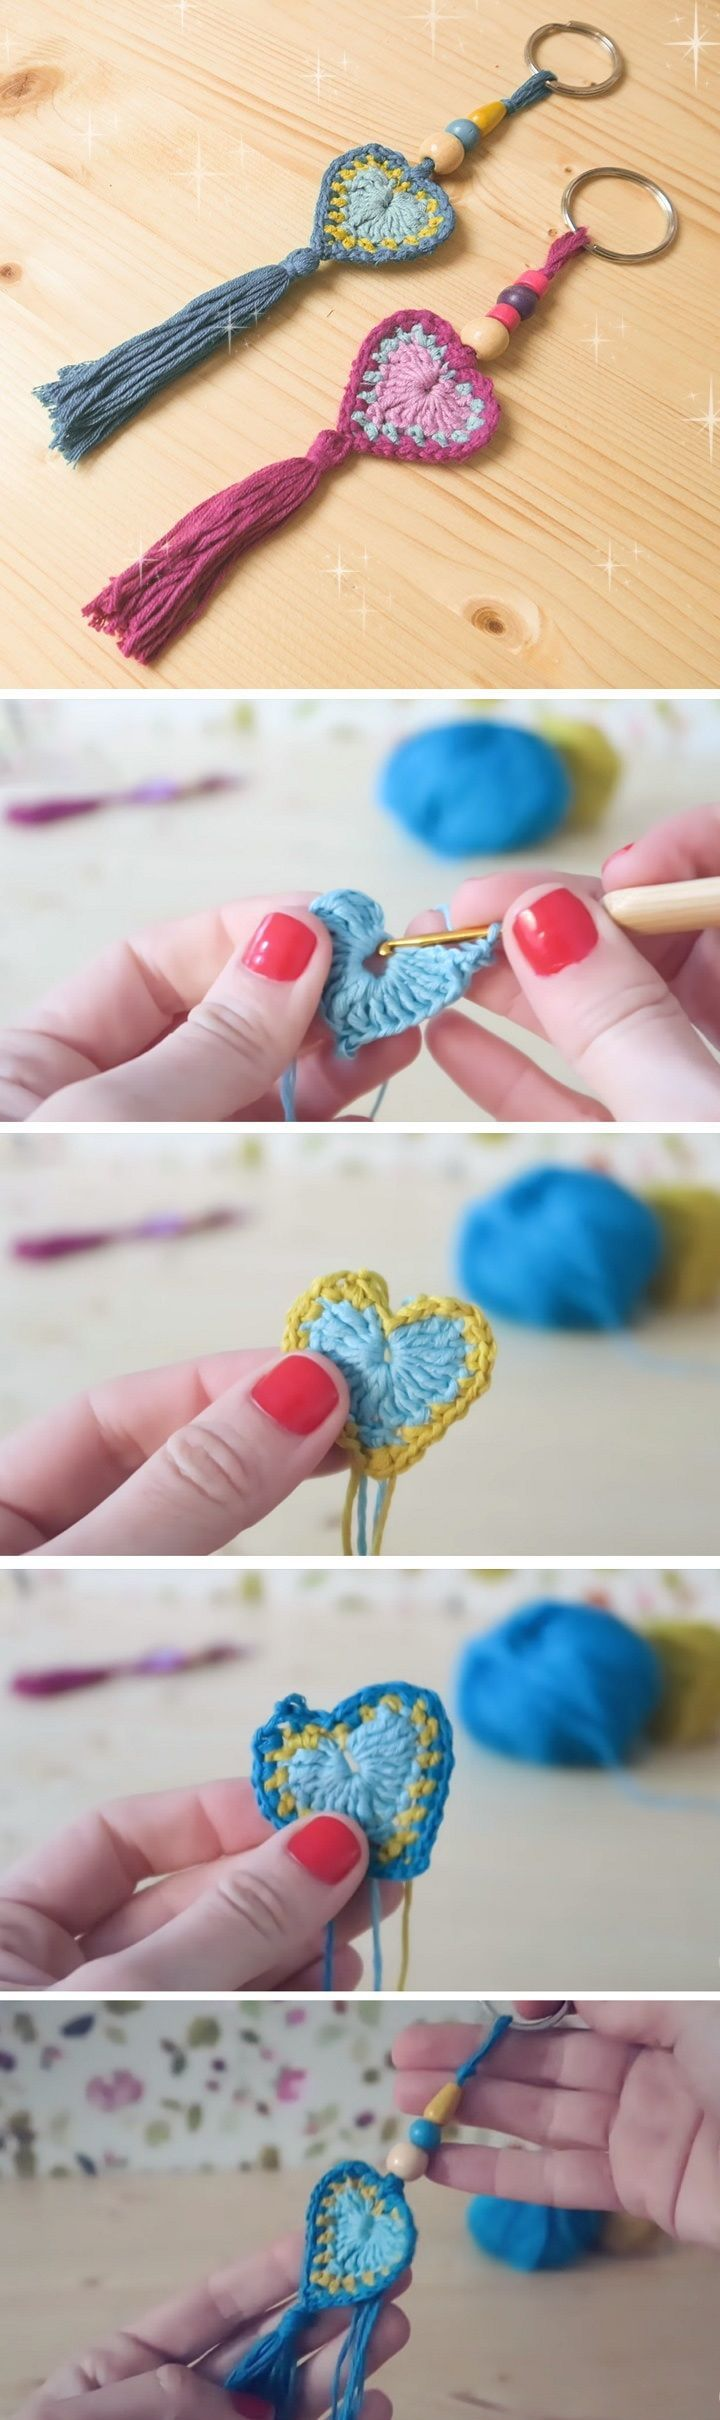 A Lot Of Times We Are Too Busy Crocheting Some Really Complicated Stuff It Is True That Crochet Lovers Time To Time Small Crochet Gifts Crochet Crochet Heart